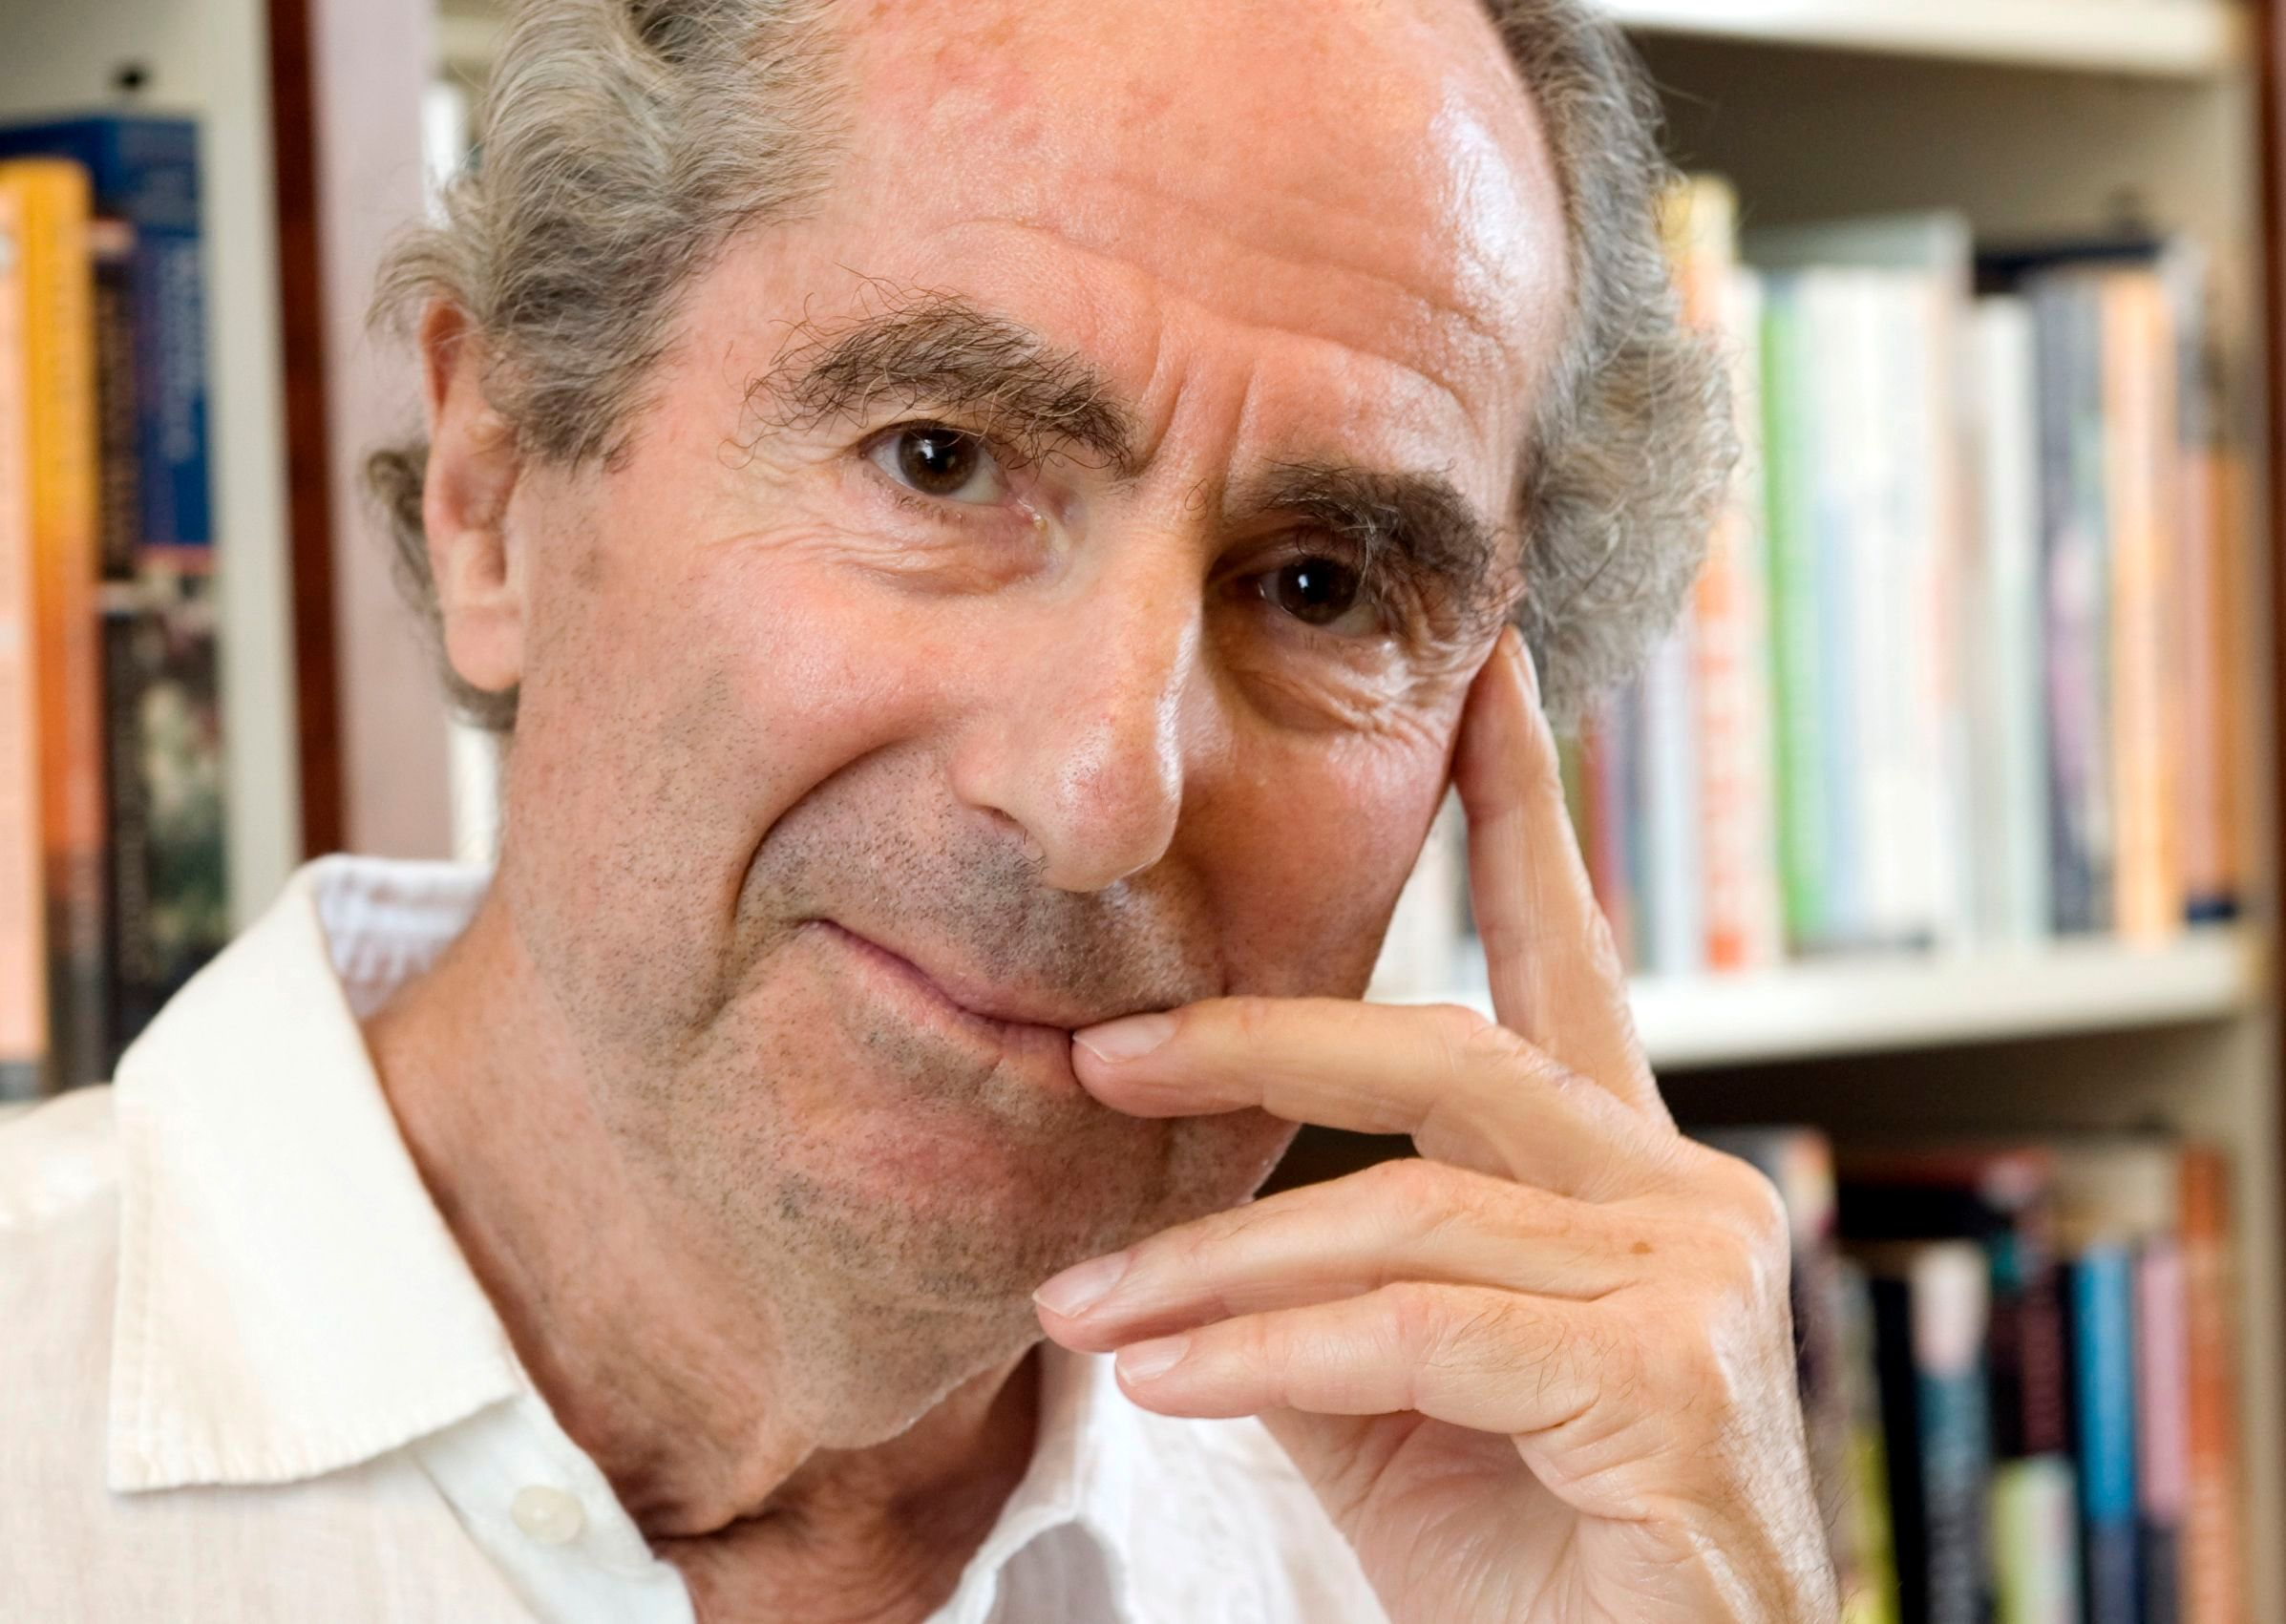 'A Yid With an Id': Jewish Community Remembers Novelist Philip Roth